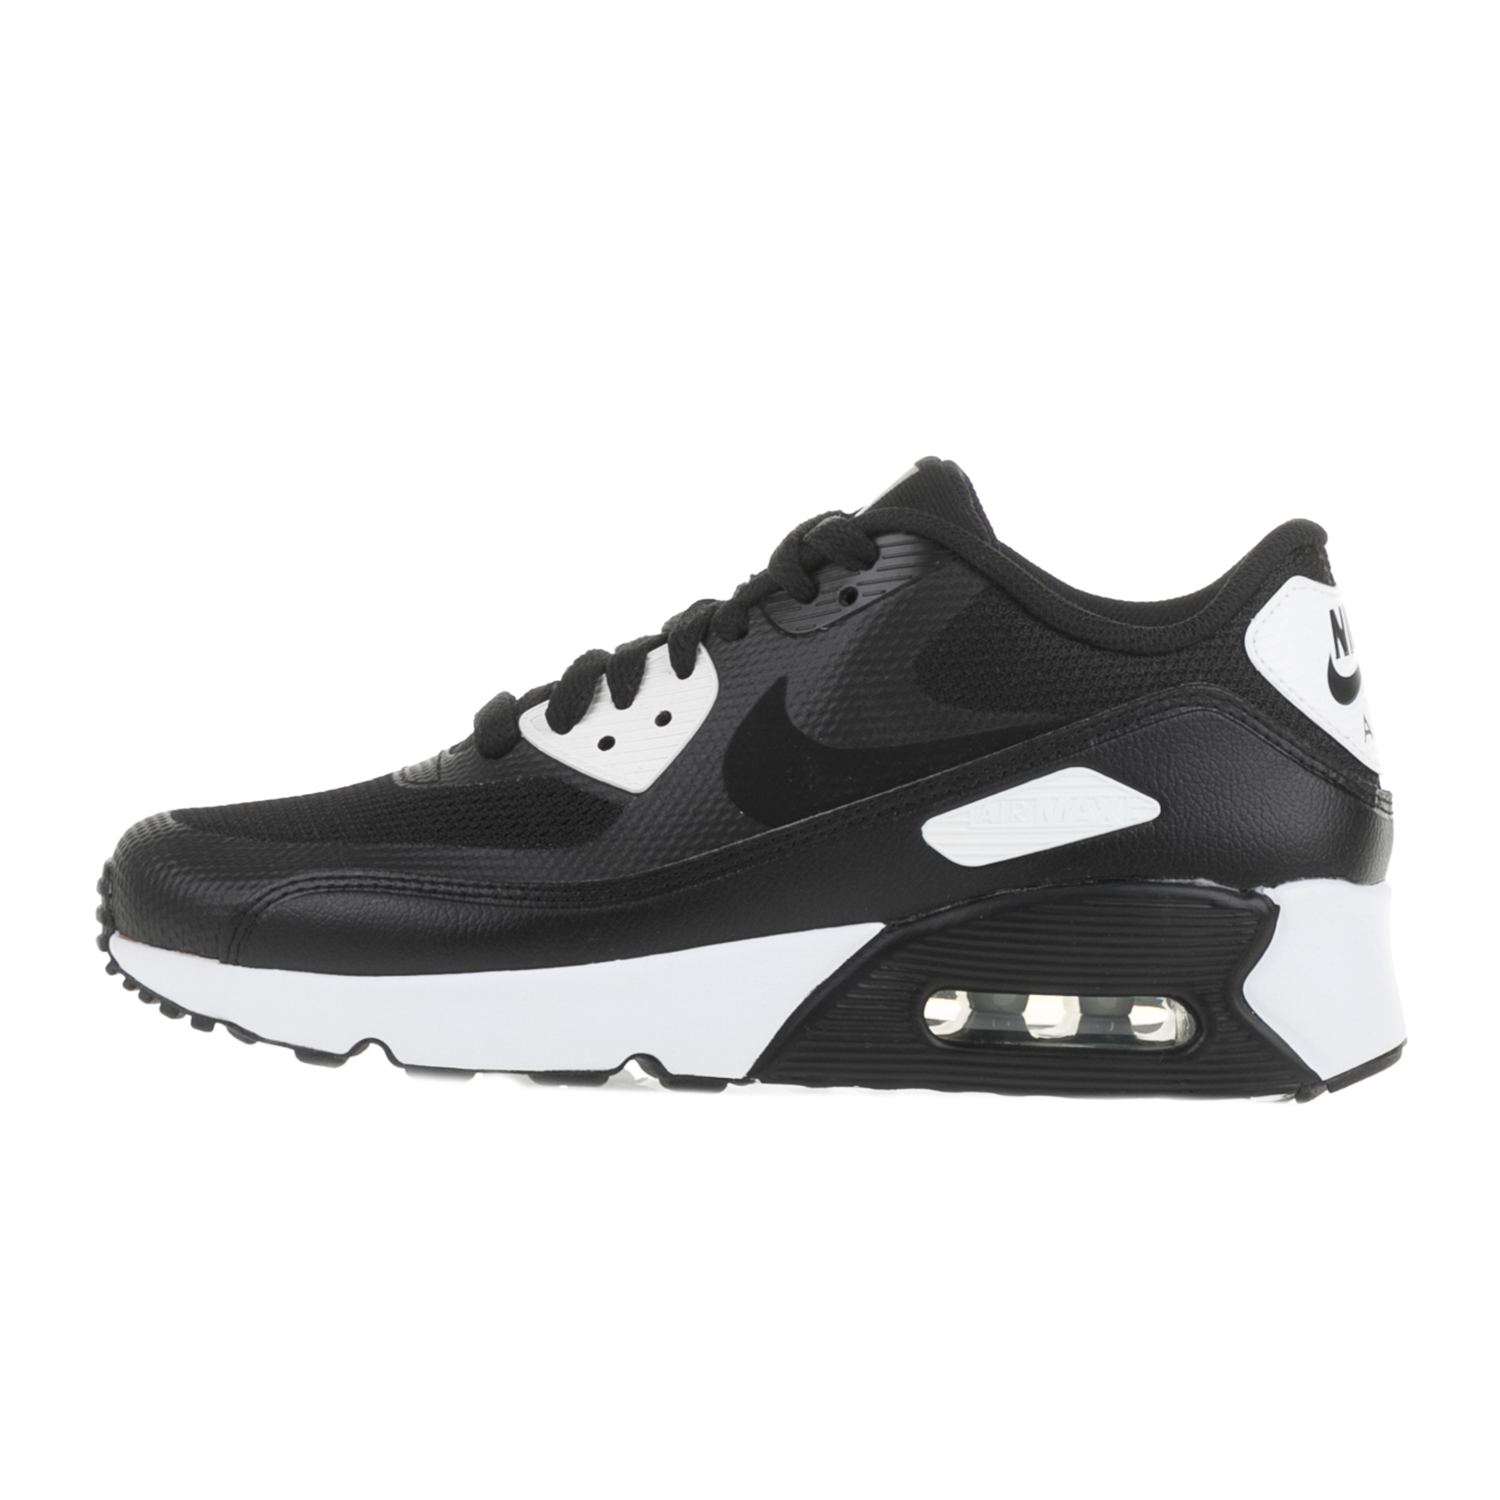 Factoryoutlet NIKE – Παιδικά αθλητικά παπούτσια AIR MAX 90 ULTRA 2.0 (GS)  μαύρα 861ac5e22de